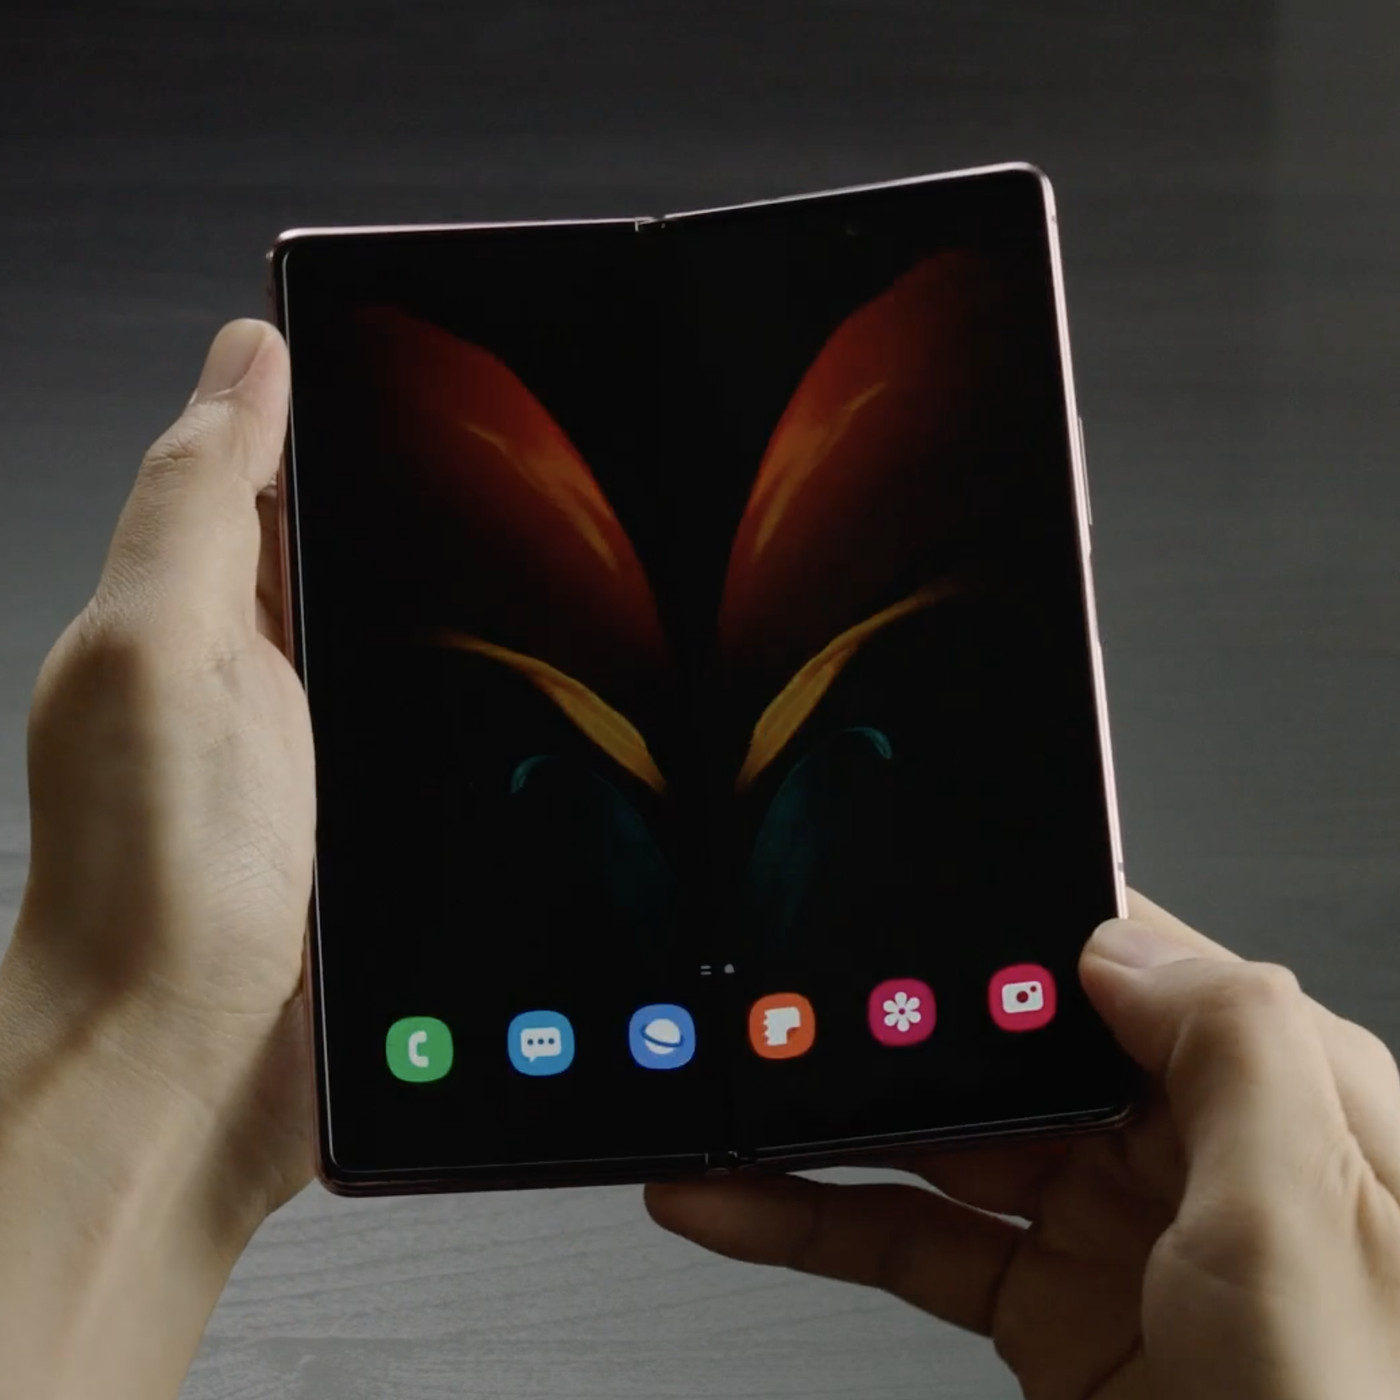 Samsung will let you reserve a Galaxy Z Fold 2 today ahead of official  preorders - The Verge